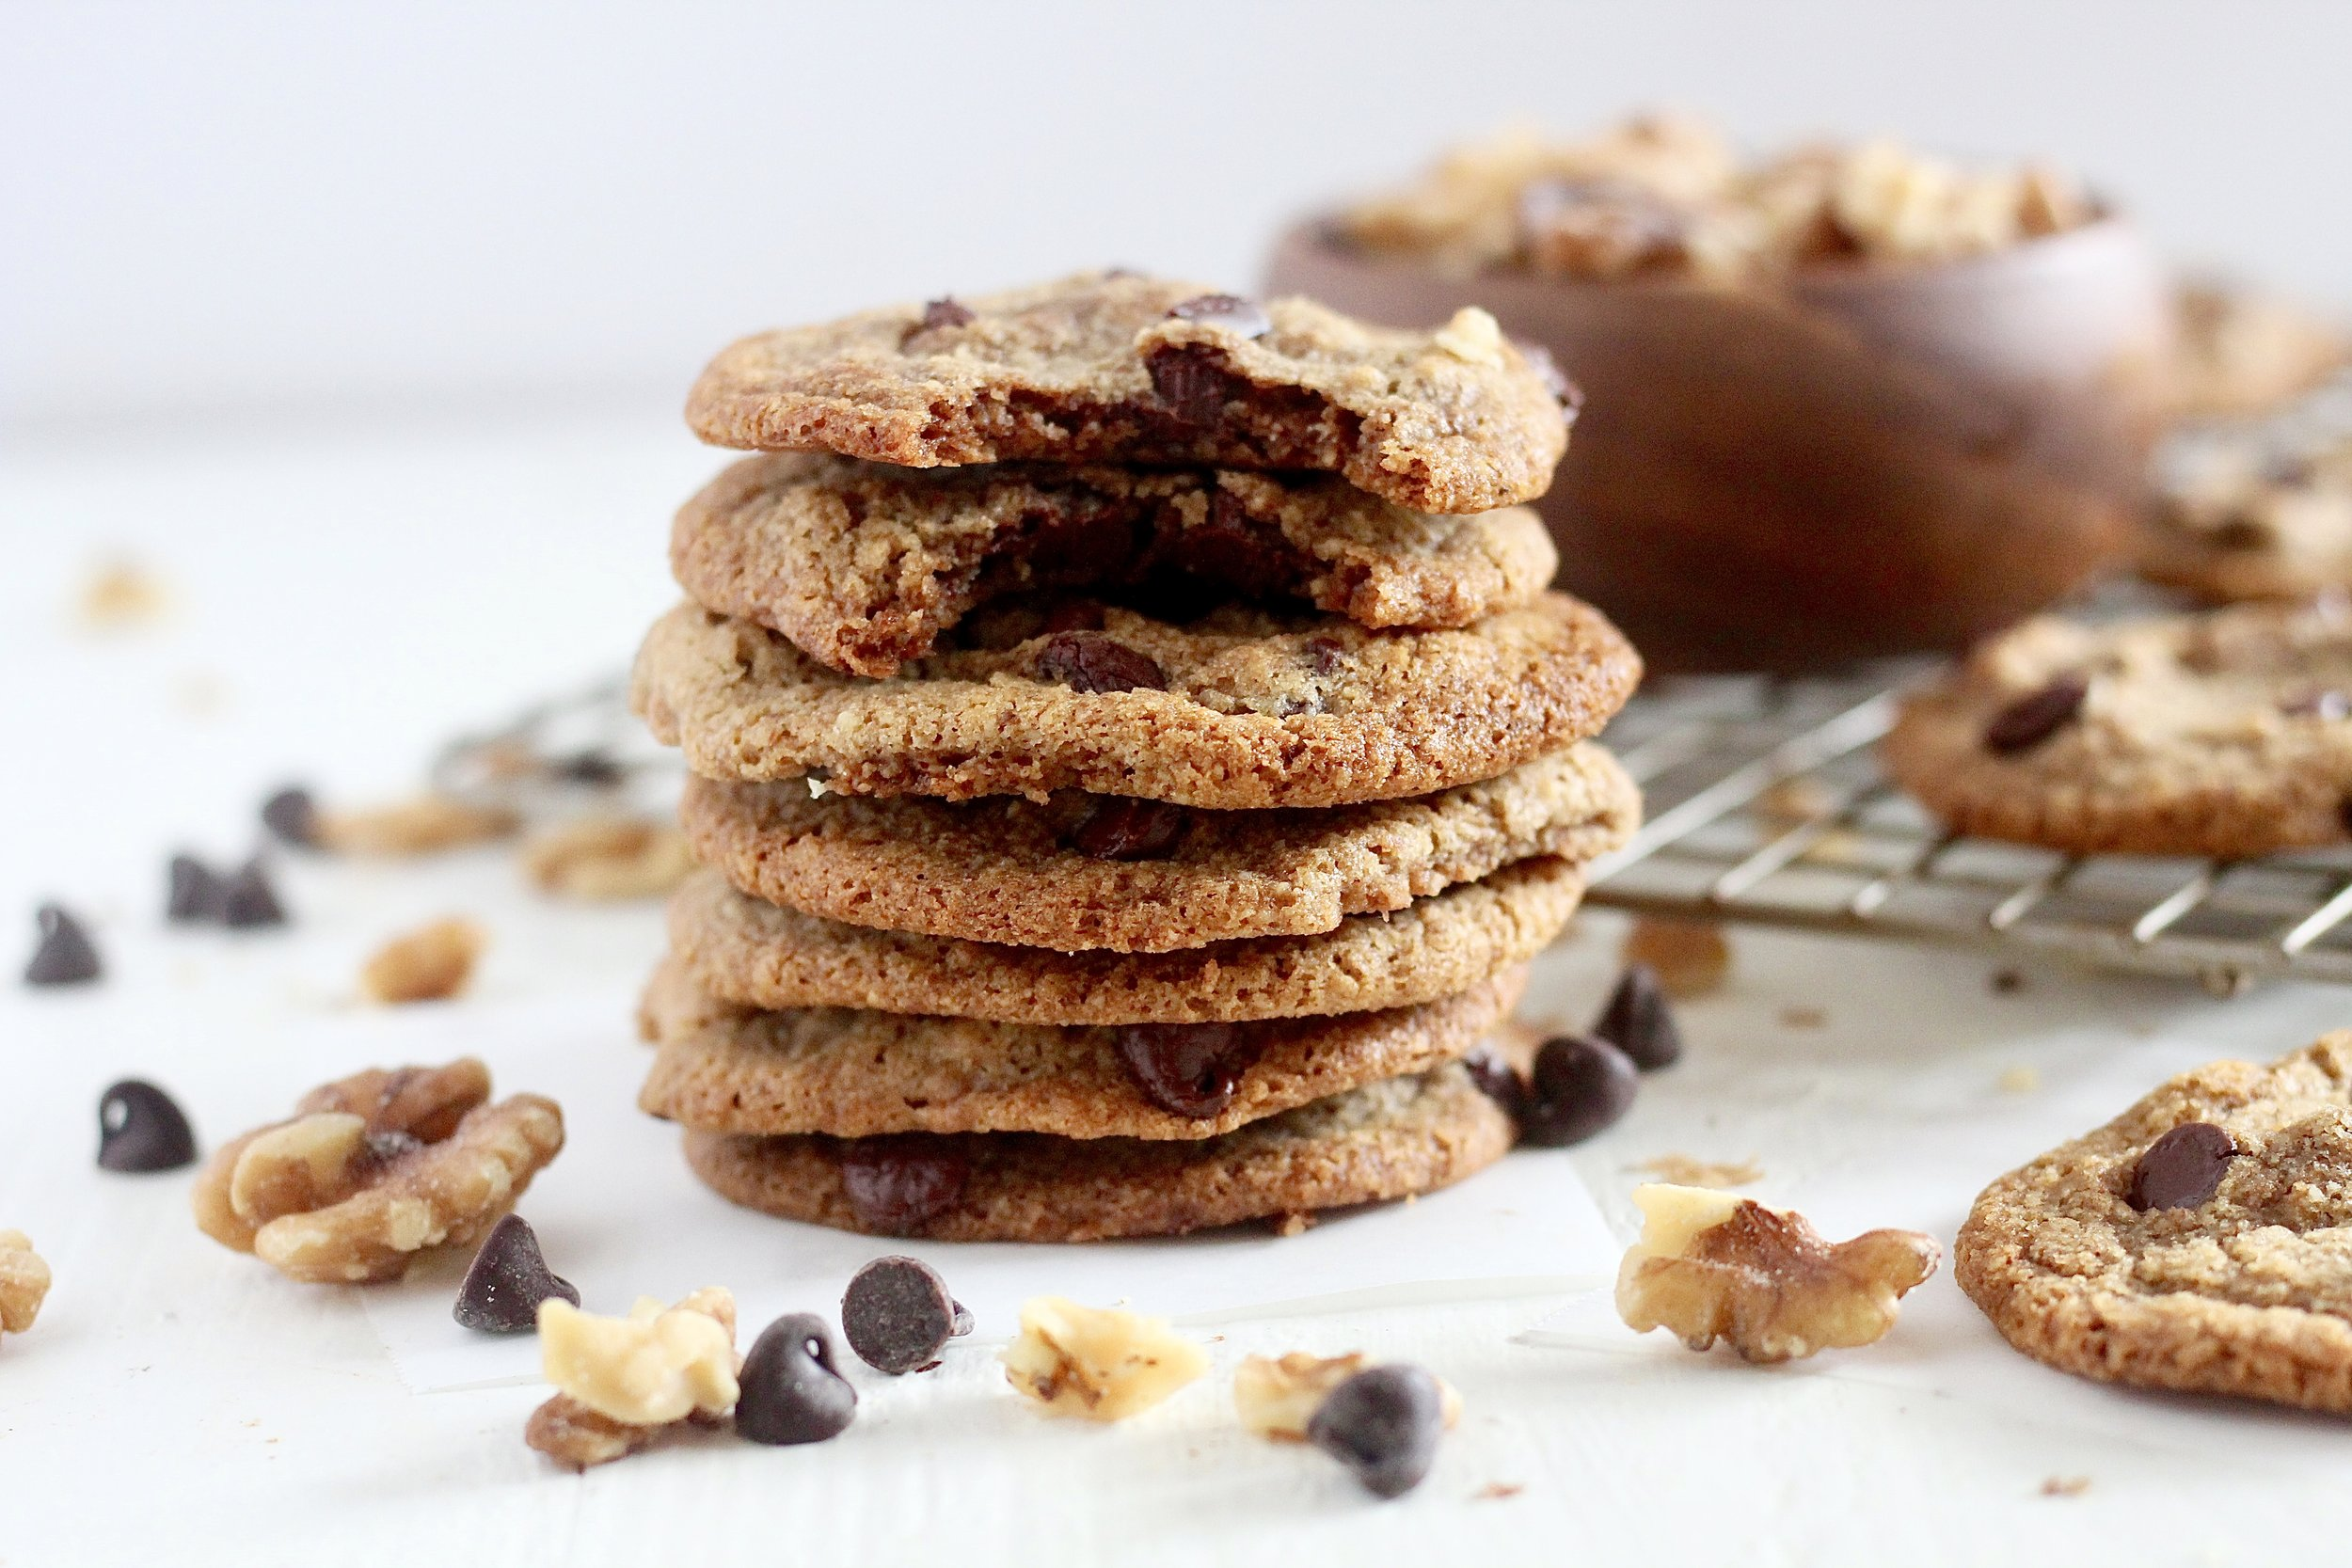 Grain Free Walnut Chocolate Chip Cookies